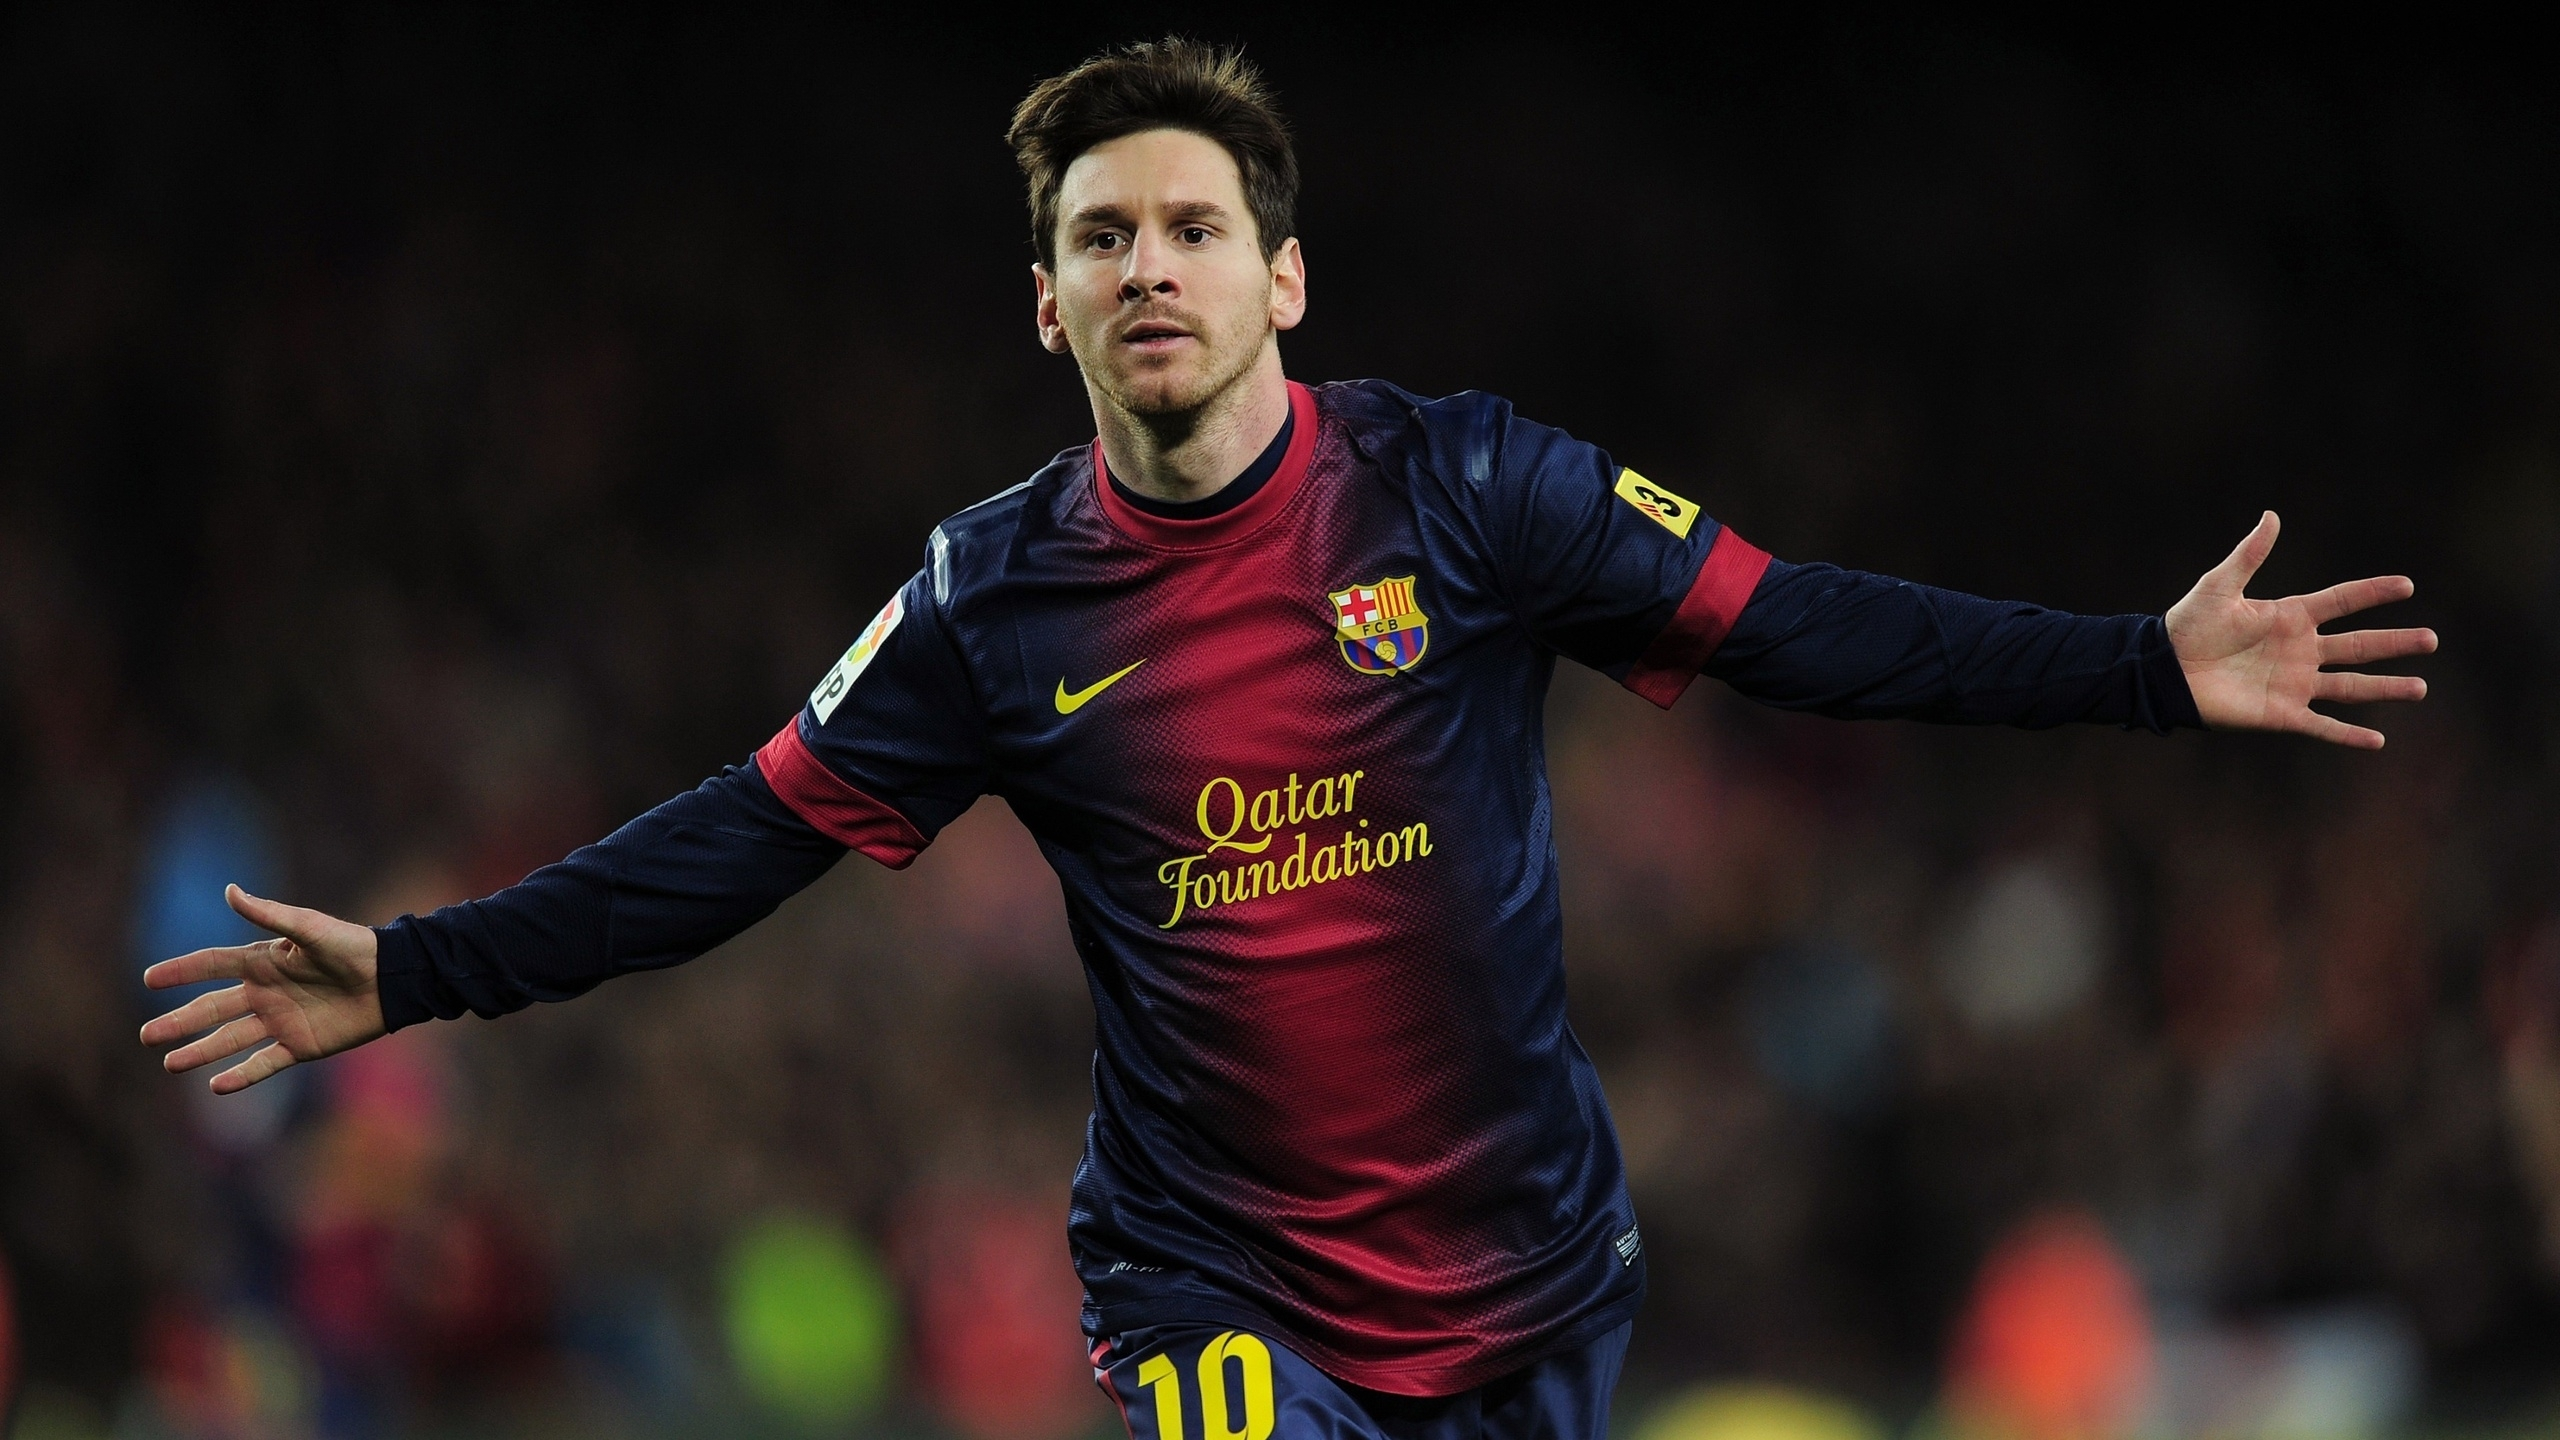 lionel messi full hd wallpaper and background image | 2560x1440 | id